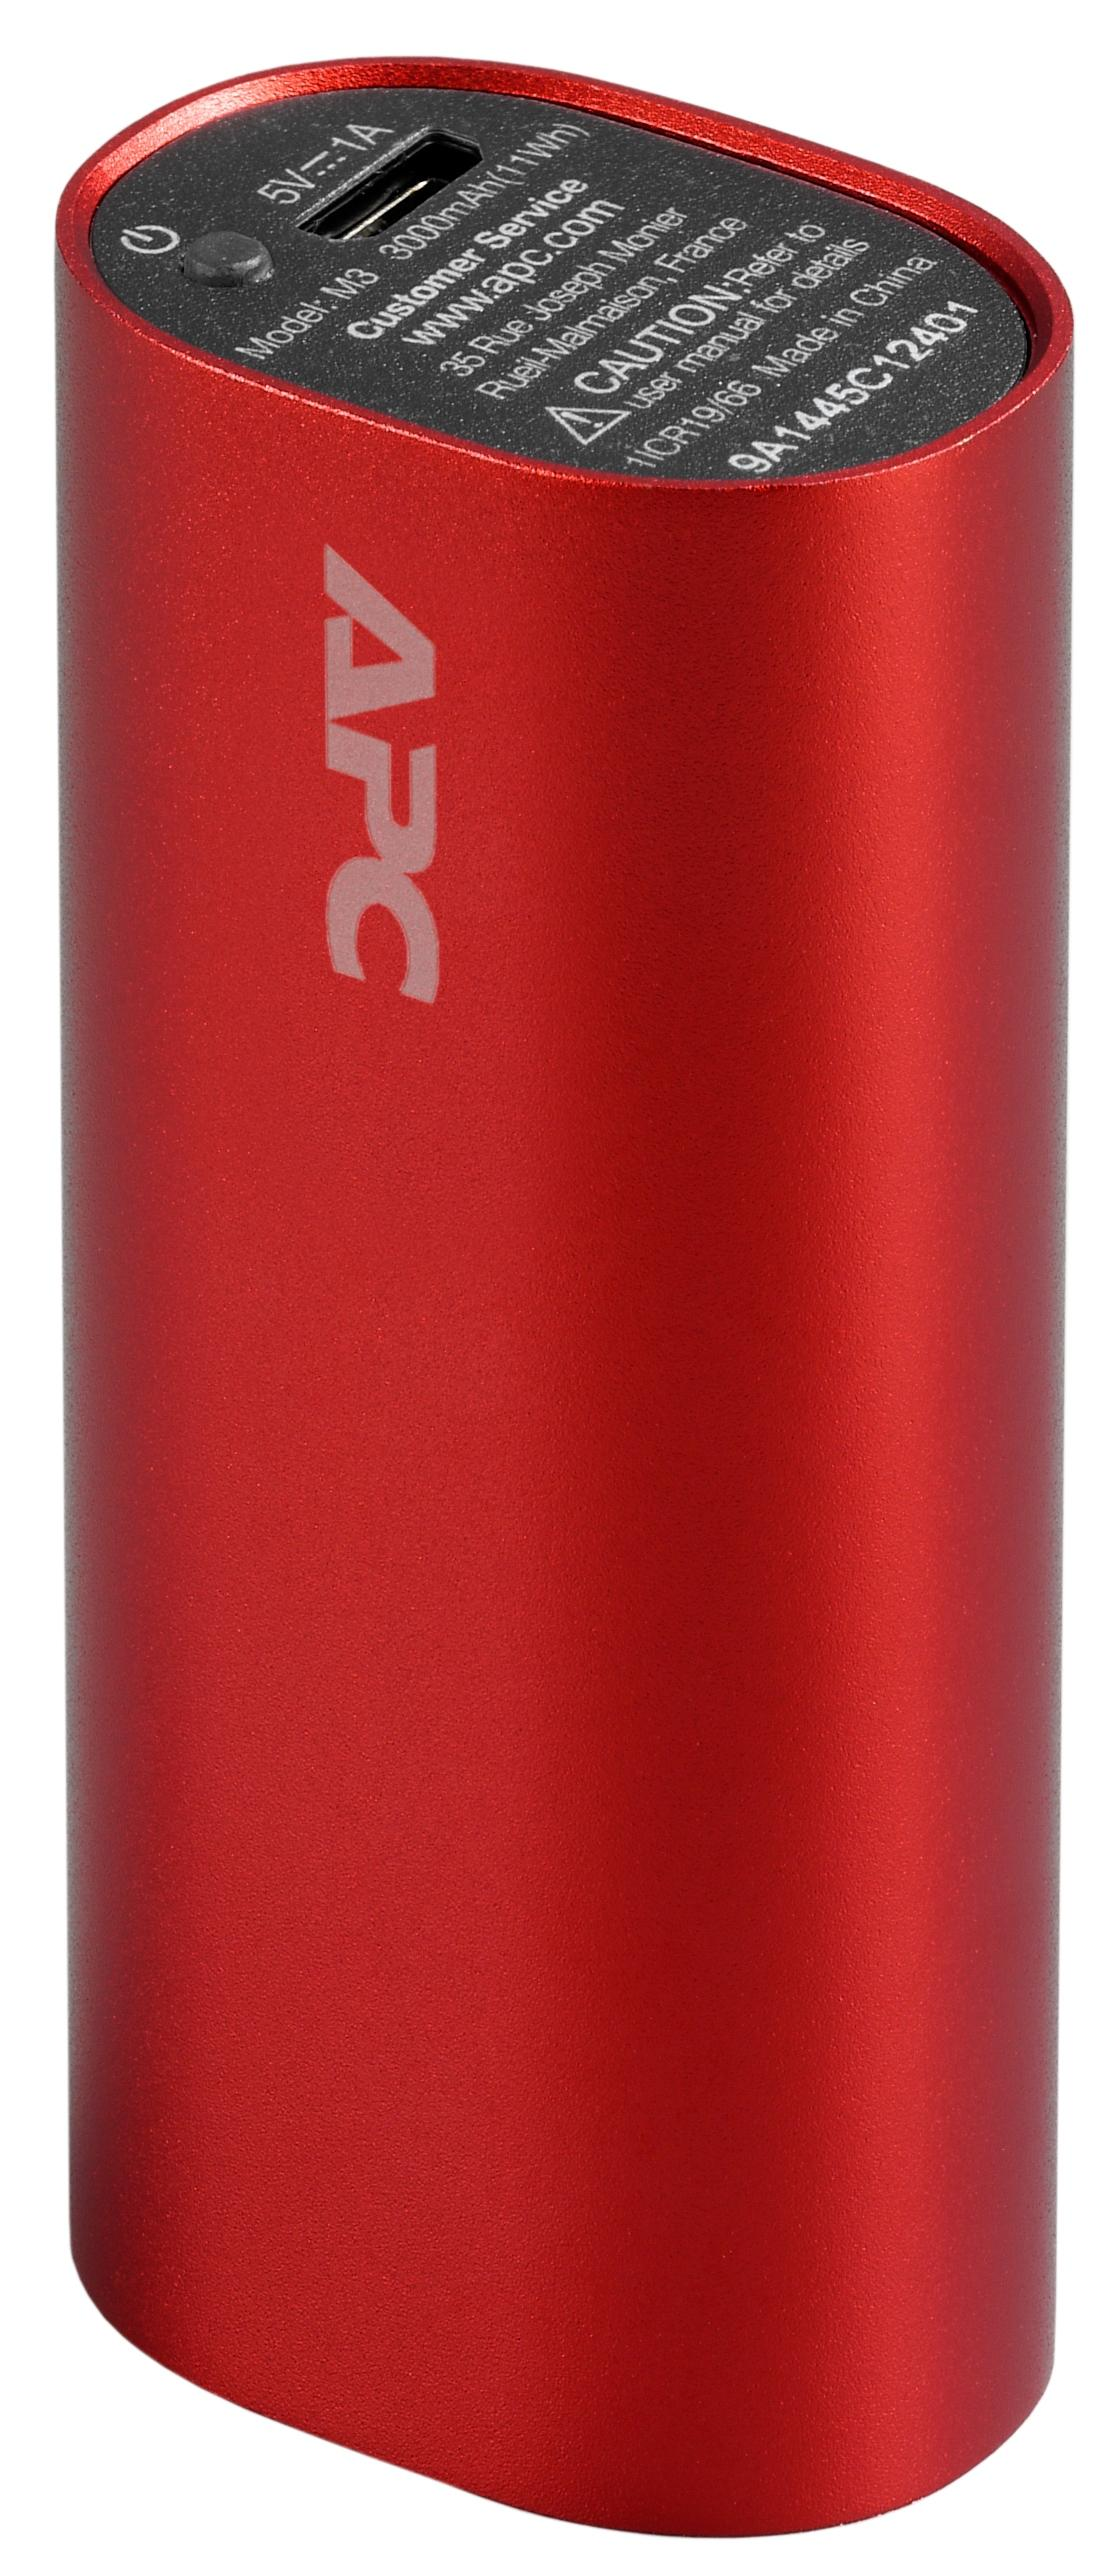 APC Mobile Power Pack, 3000mAh Li-ion cylinder, Red ( EMEA/CIS/MEA) (Power Bank)